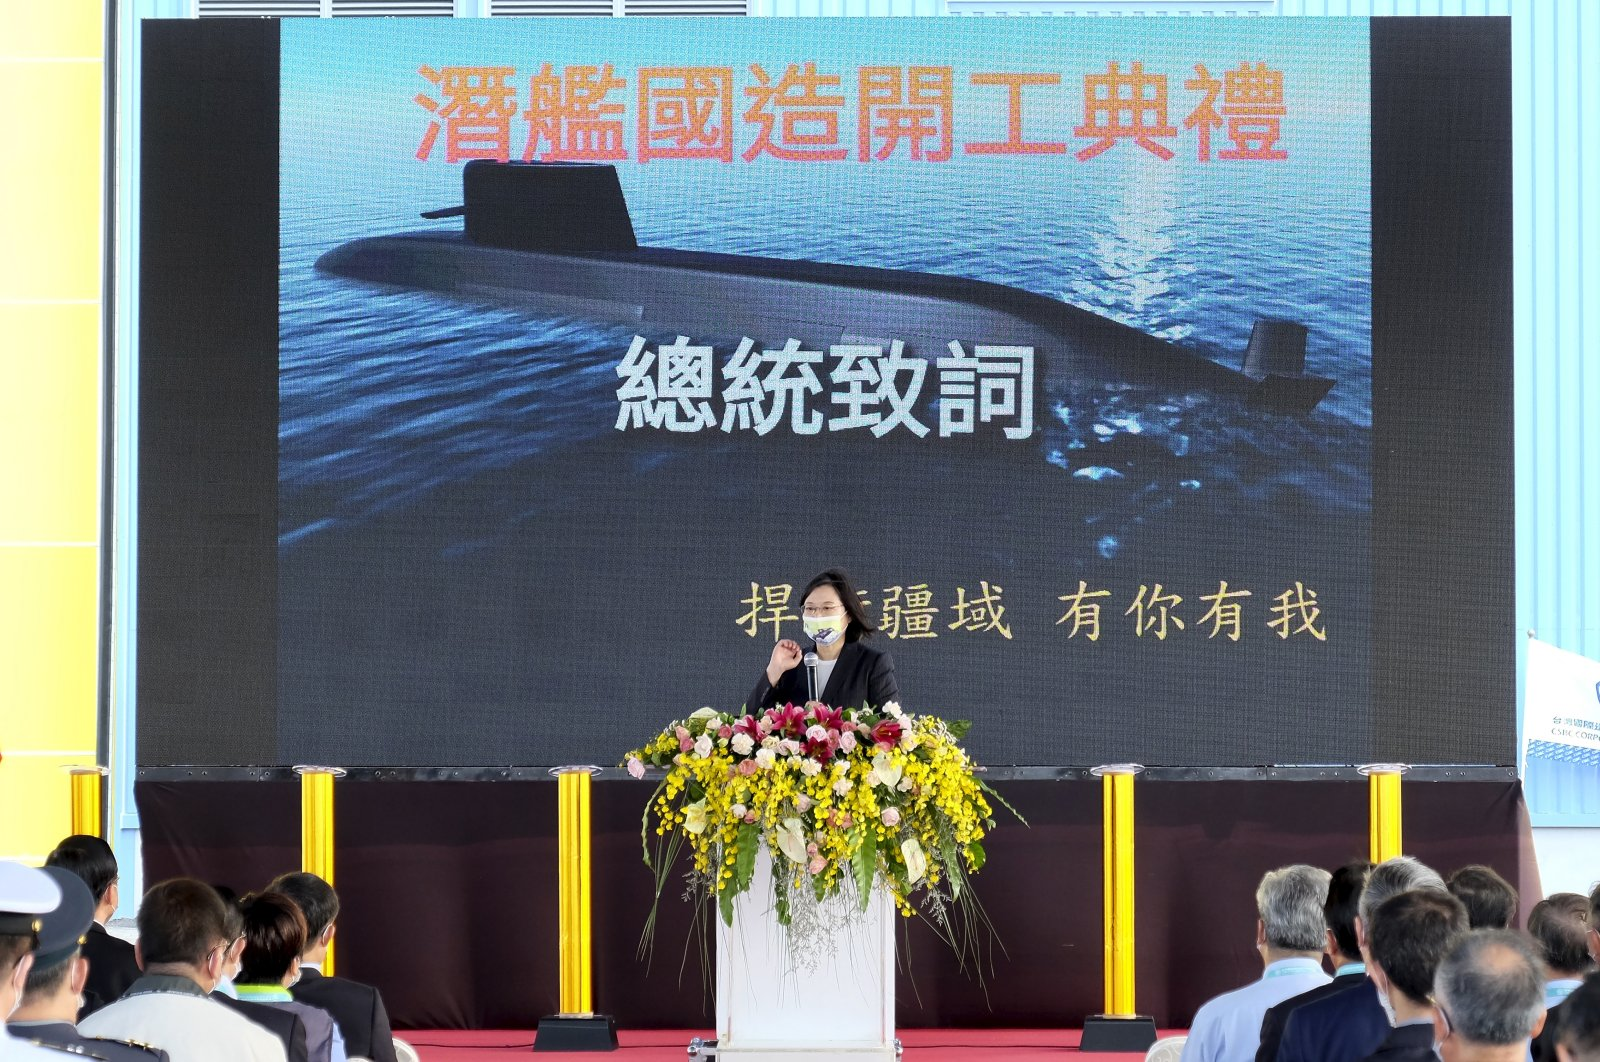 Taiwan's President Tsai Ing-wen speaks during a ceremony to inaugurate the production of domestically-made submarines at CSBC Corp's shipyards in the southern city of Kaohsiung, Taiwan on Nov. 24, 2020. (AP Photo)